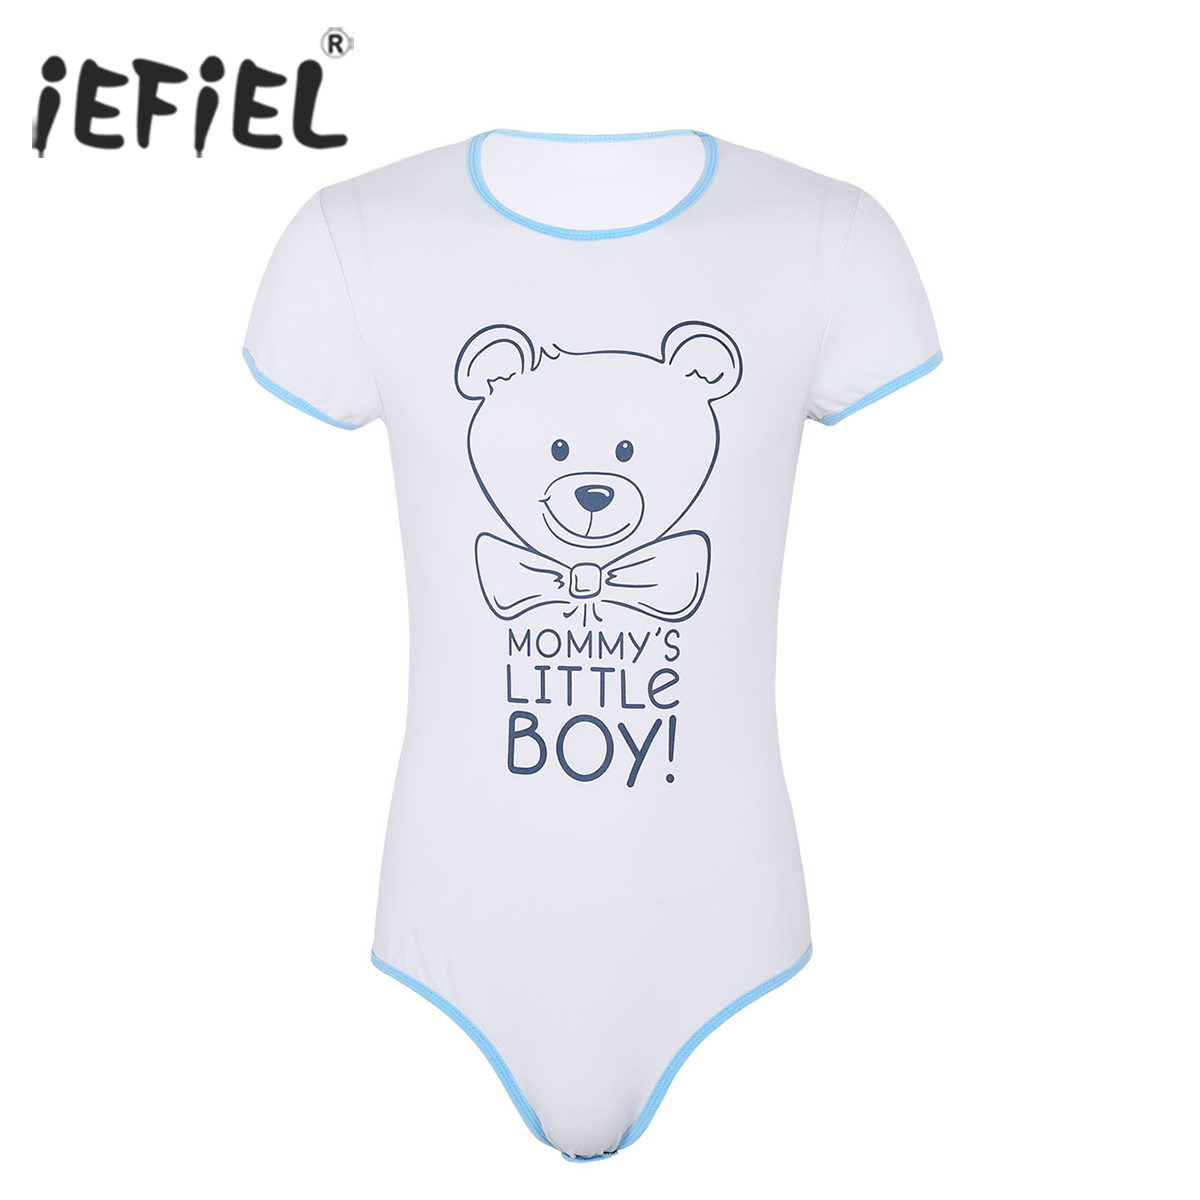 77ba8a5571 Detail Feedback Questions about Mens One Piece Adult Baby   Diaper Lover  Lingerie Short Sleeves Snap Crotch Front Printed Sissy Gay Male Bodysuit  Romper ...